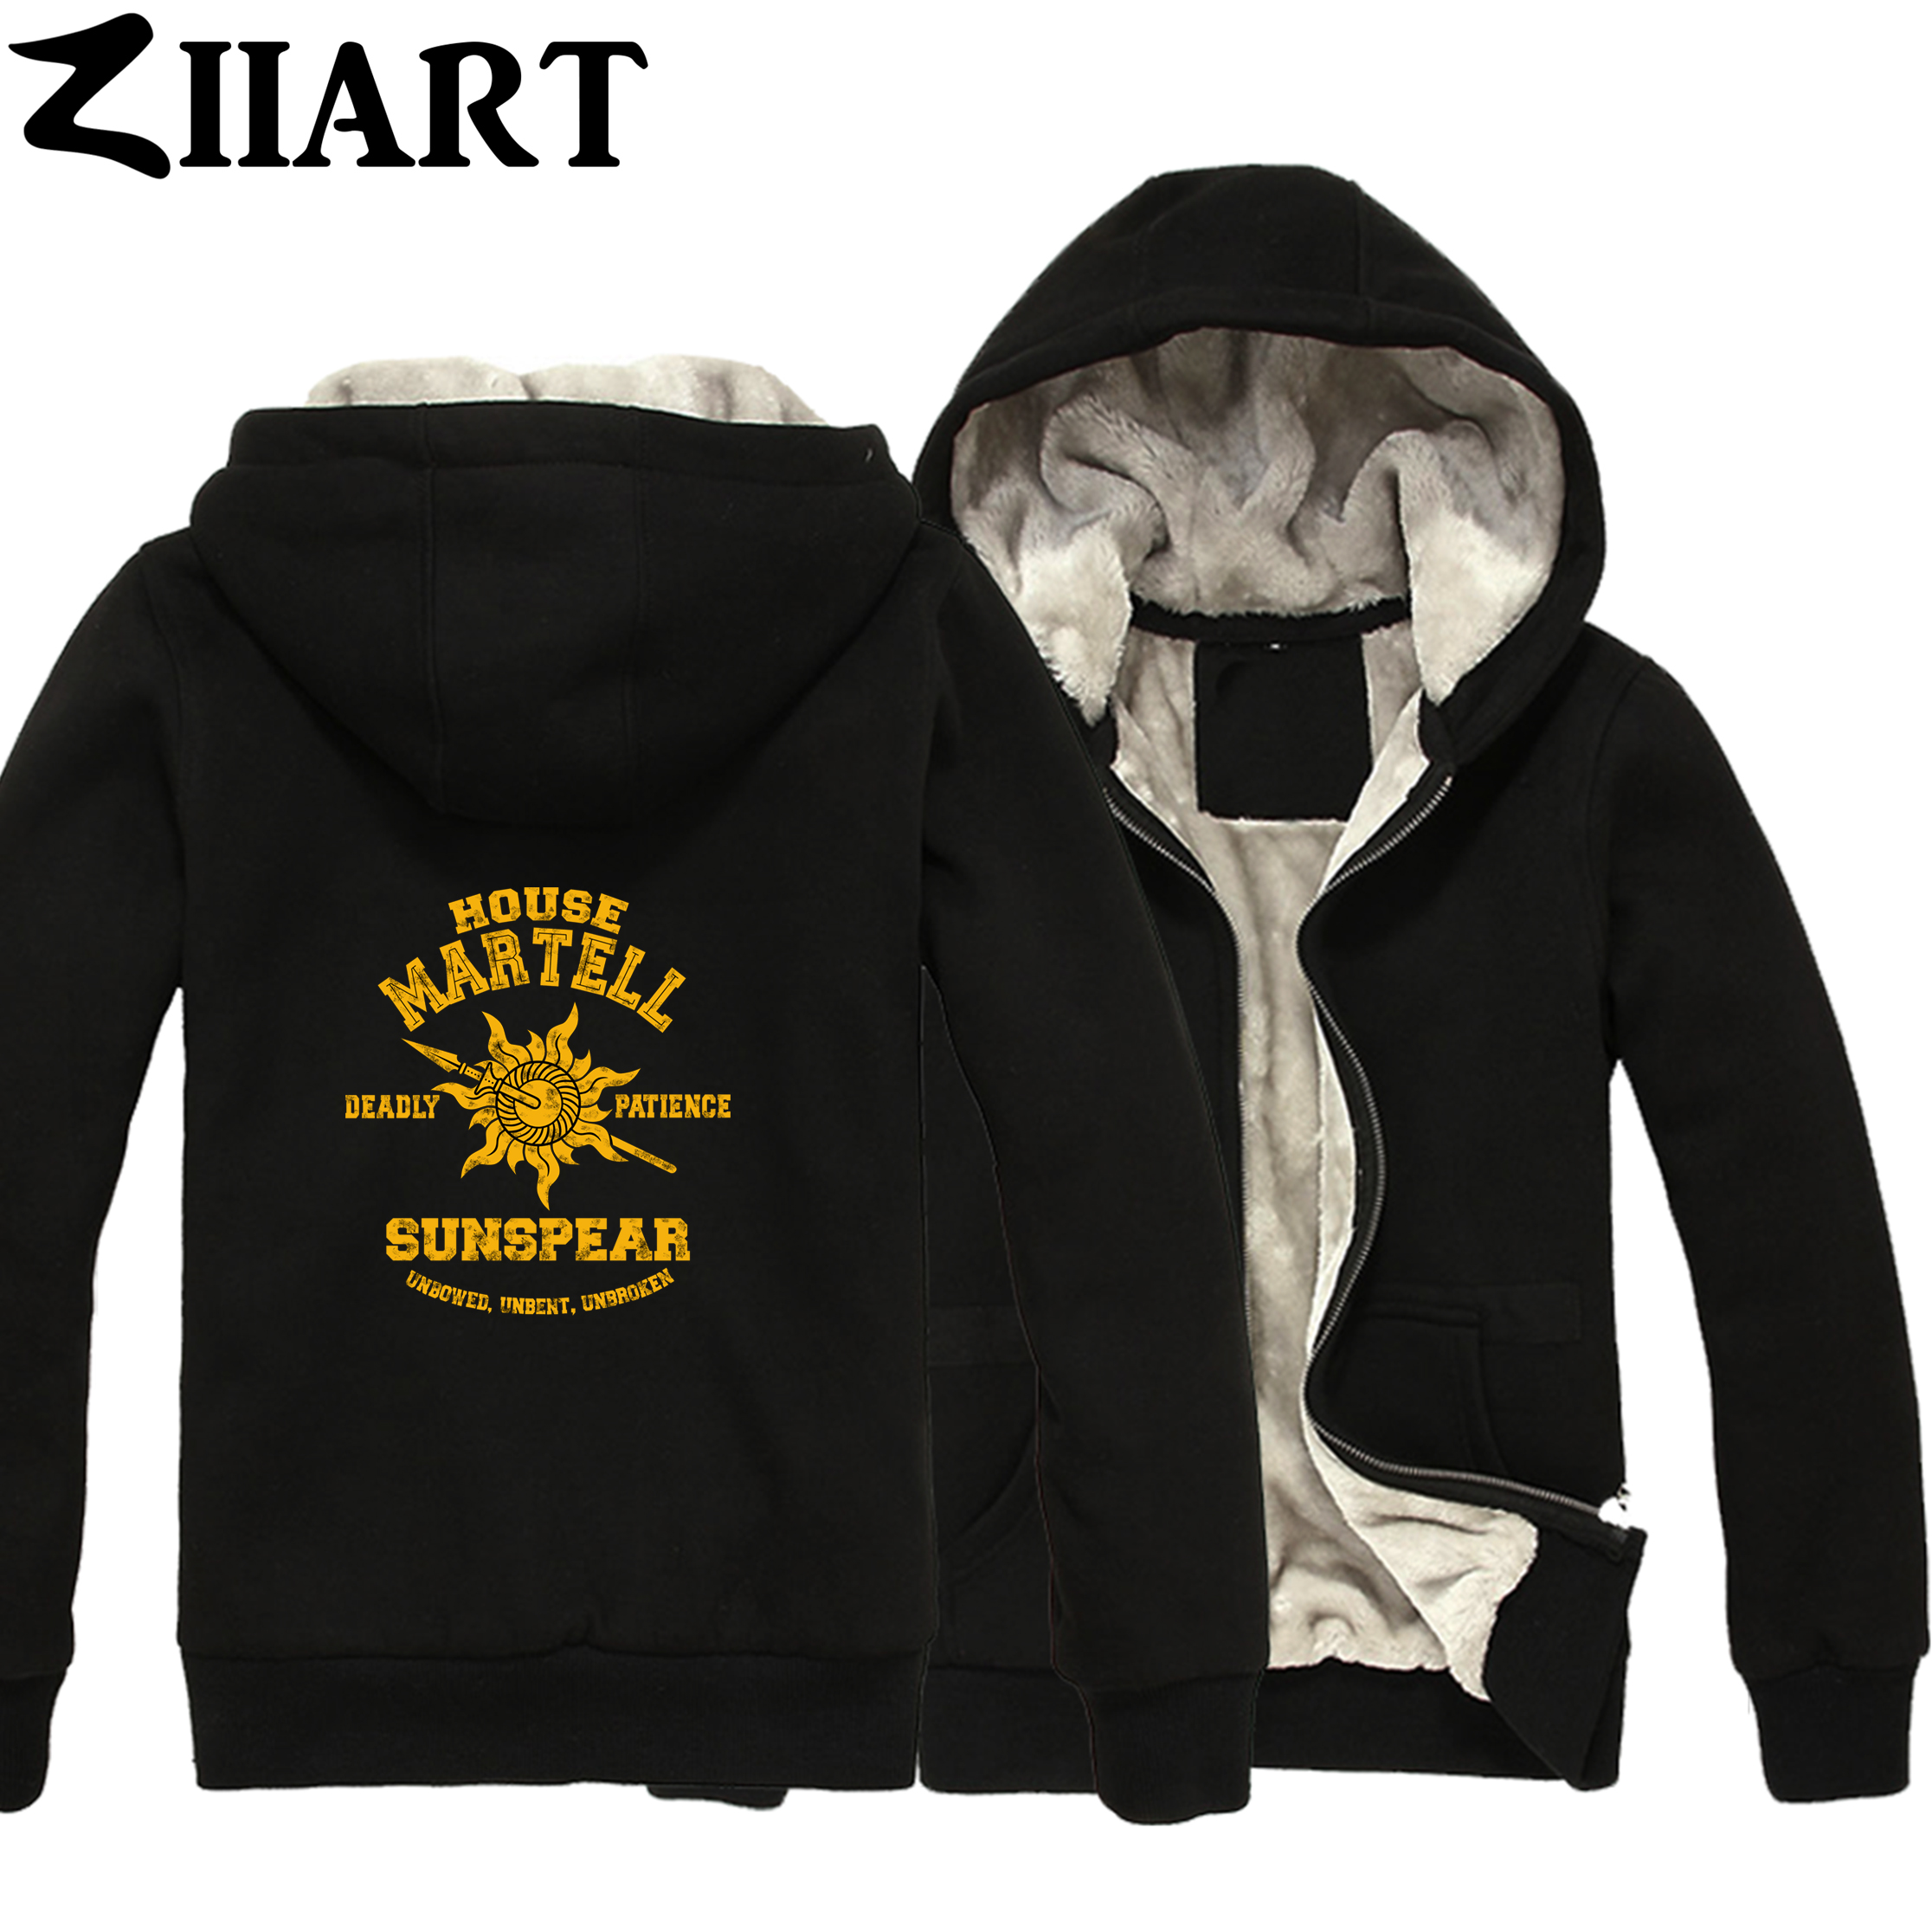 Martell House martell deadly patience sunspear unbowed unbent Boys Man Male Full Zip Autumn Winter Plus Velvet   Parkas   ZIIART